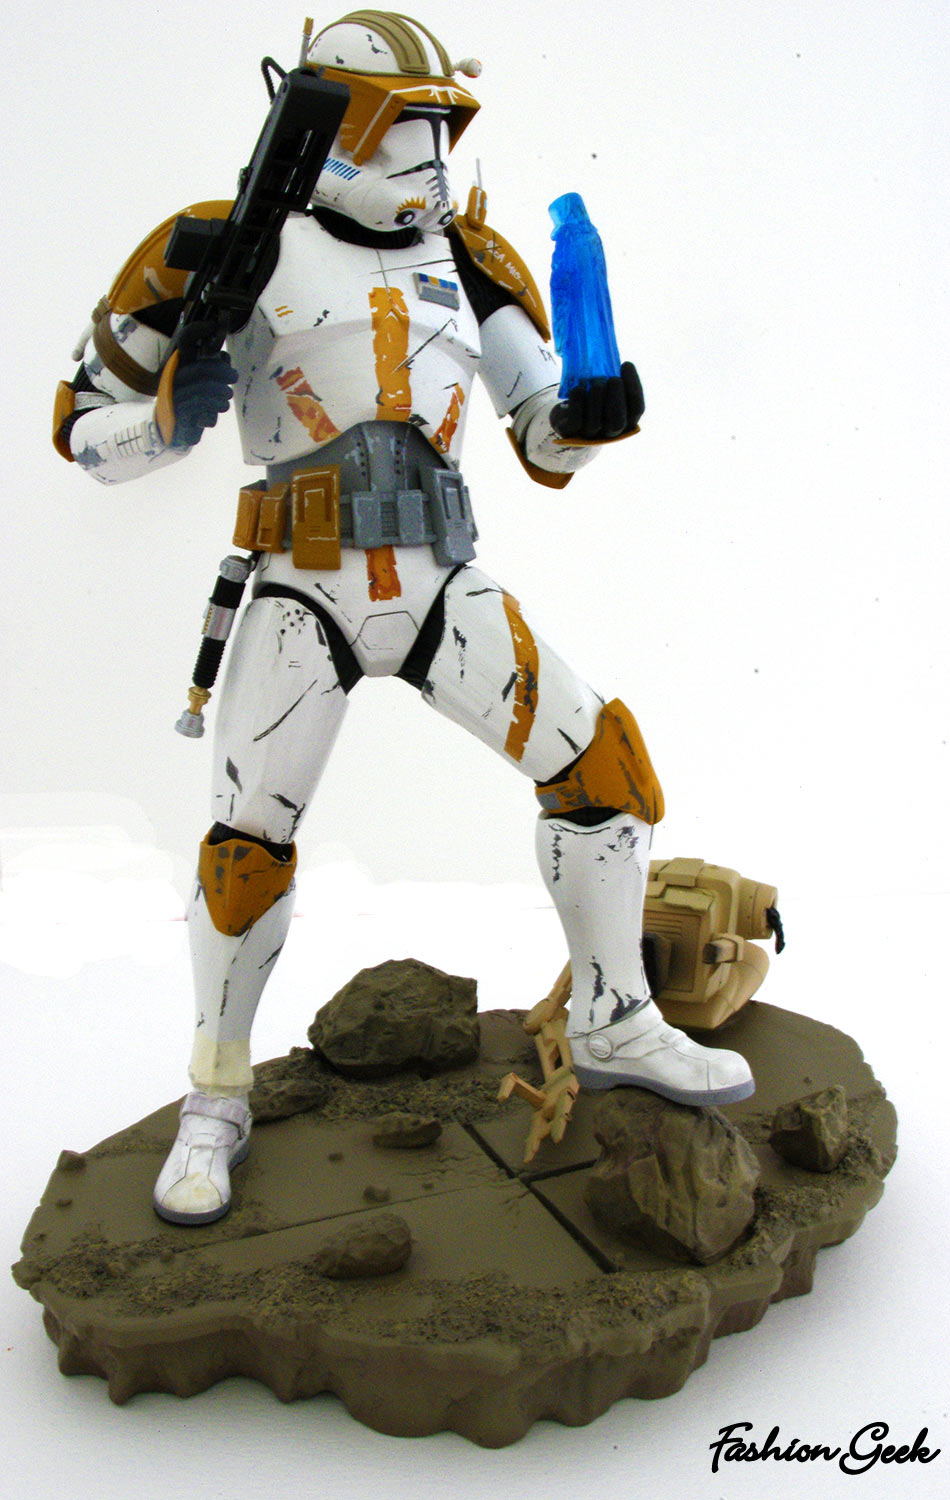 Commander-Cody-star-wars-figurine12